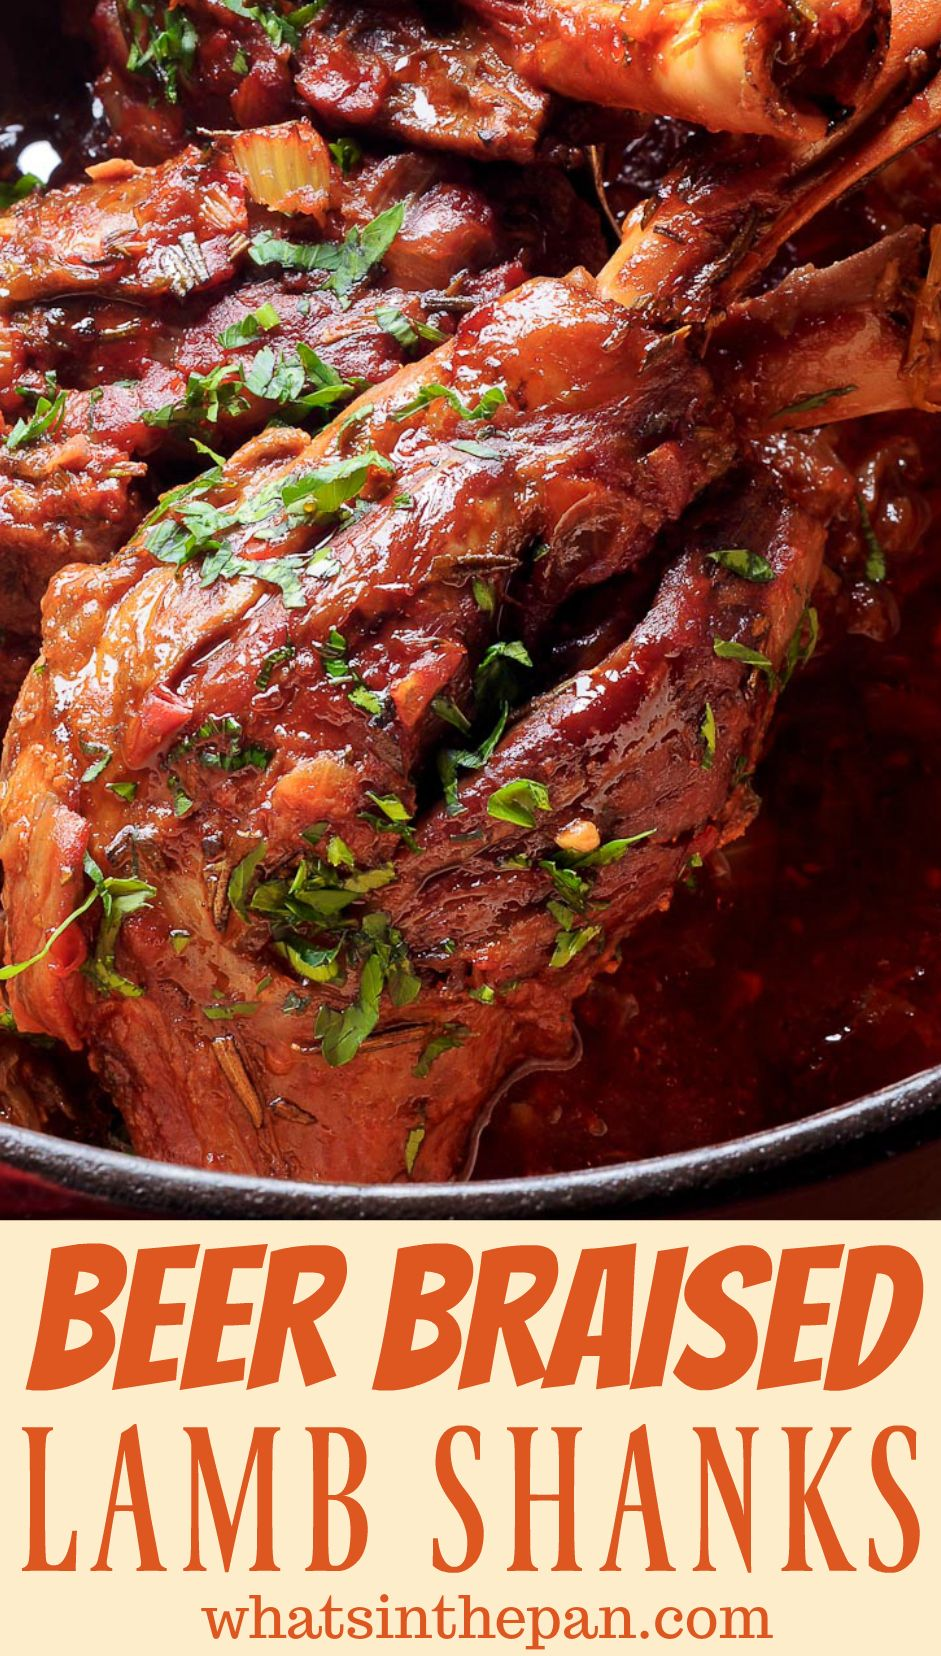 Beer Braised Lamb Shanks Makes Cooking Lamb So Easy For All Of Your Holiday Meals Or Special Lamb Shanks Slow Cooker Slow Cooked Lamb Shanks Lamb Shank Recipe